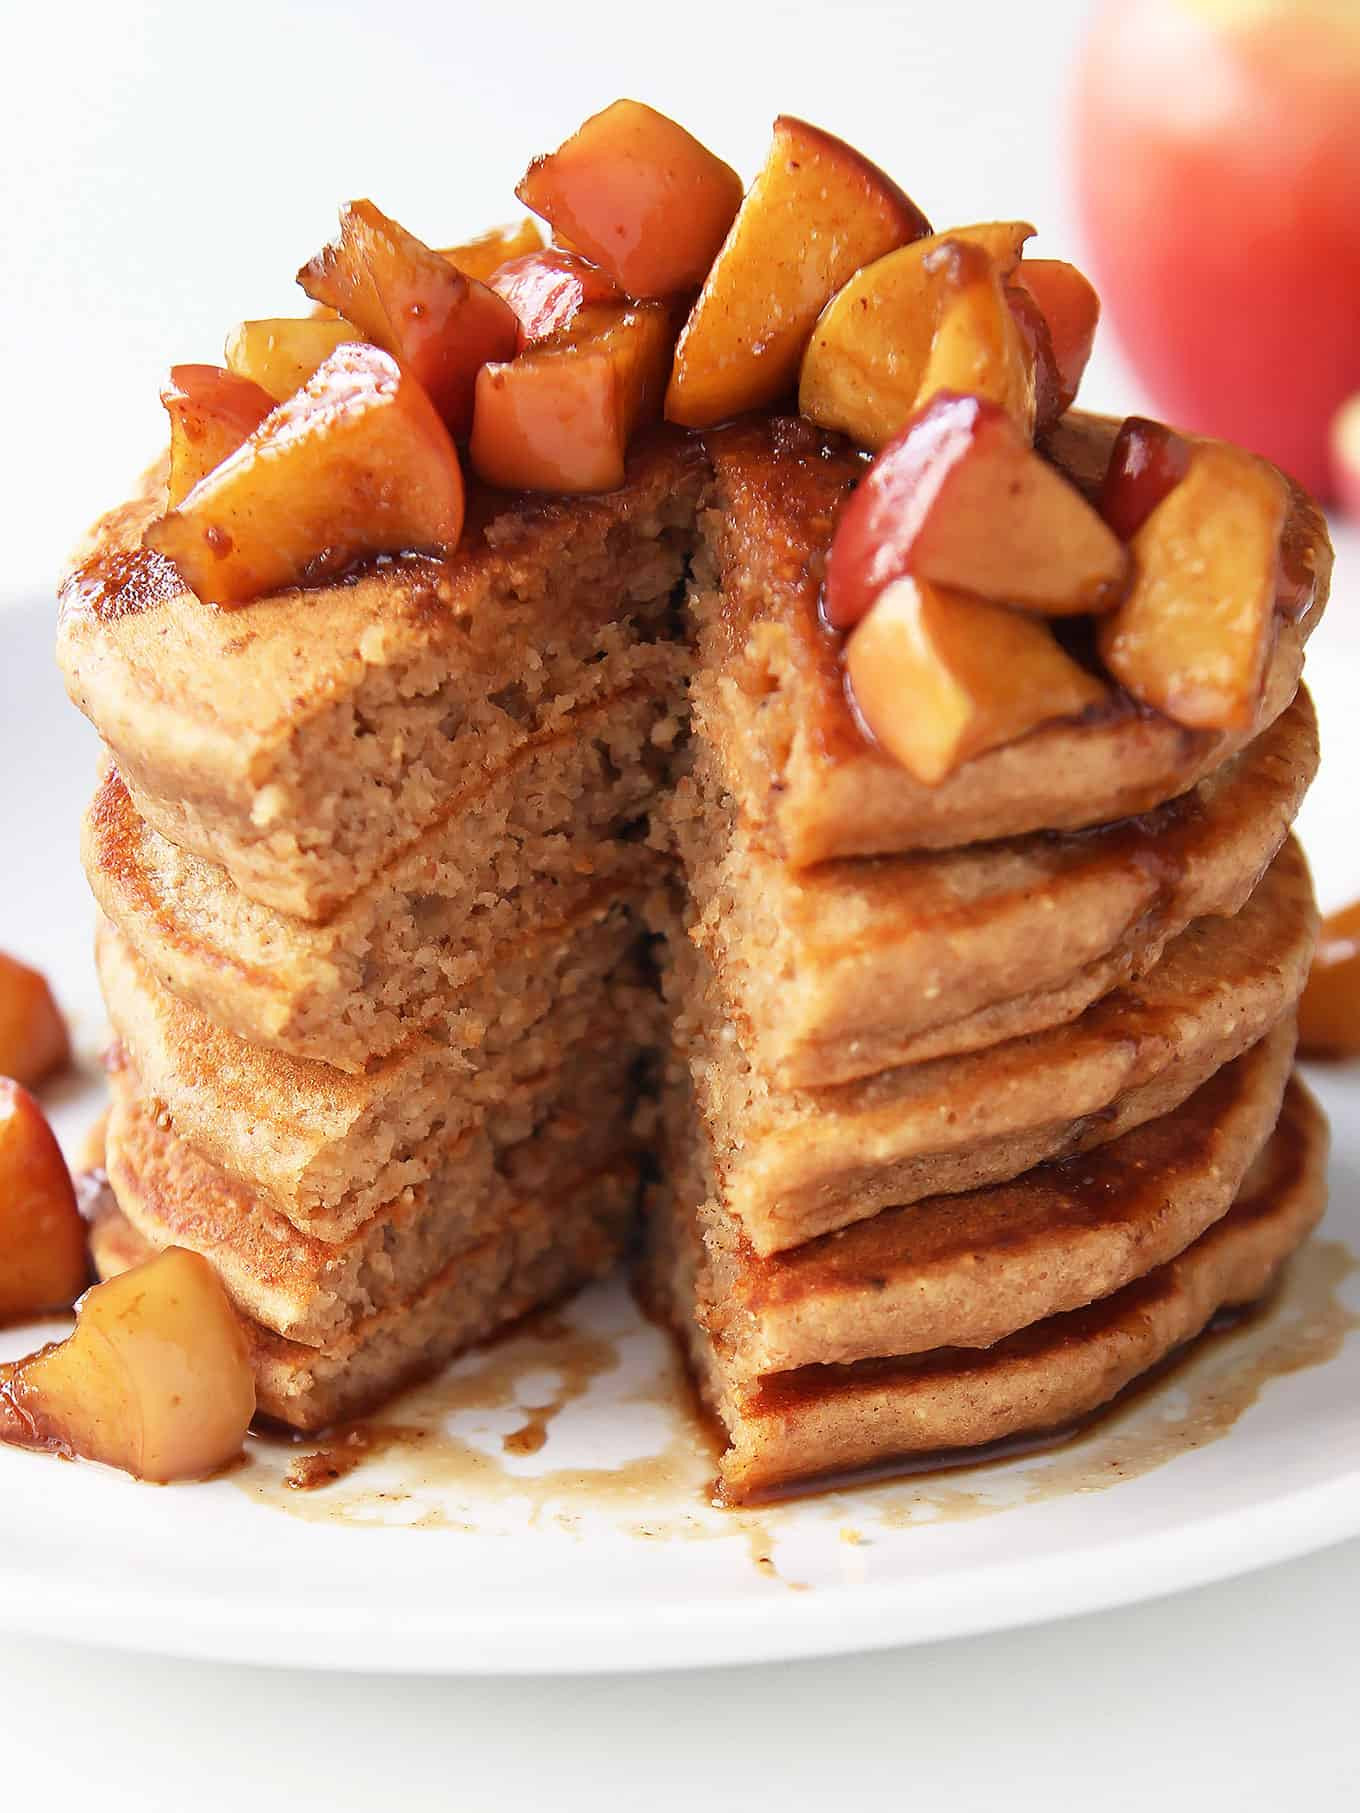 Apple Topping For Pancakes  Pancakes apple topping recipes Food cake recipes